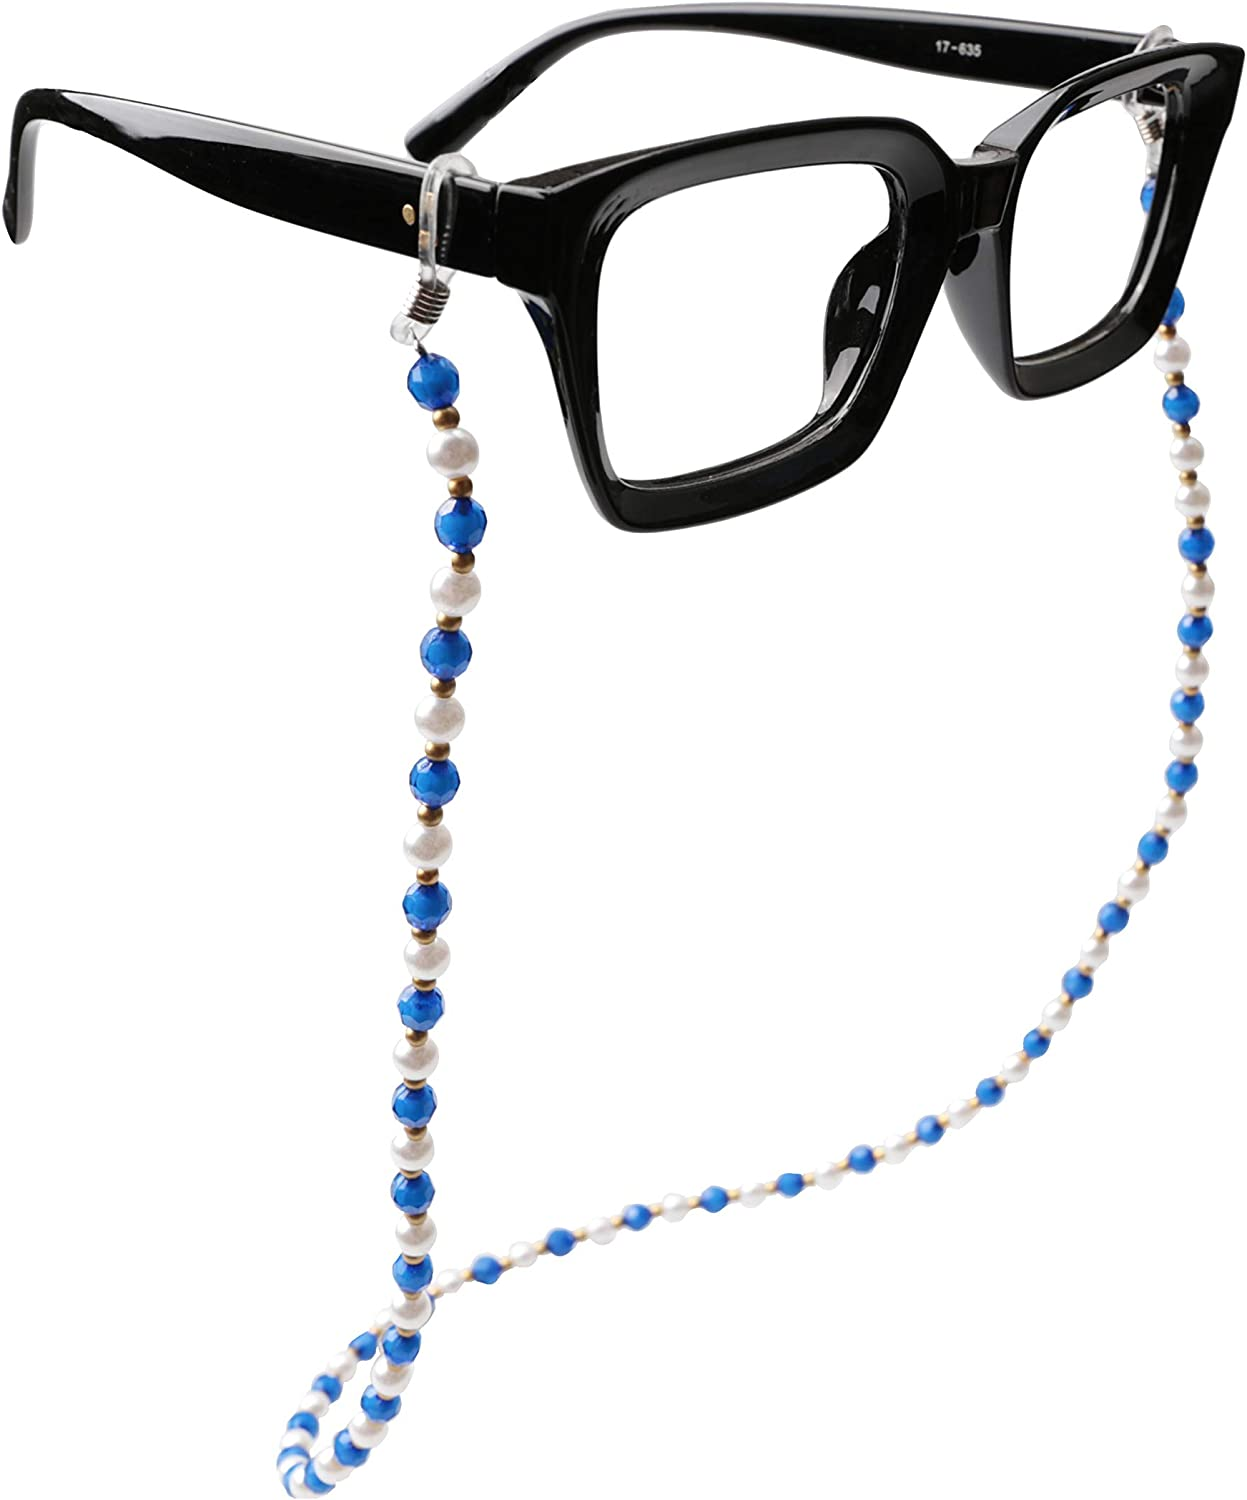 Sopaila Pearl Beads Eyeglasses Chain String Holder Sunglasses Necklace Chain Cords